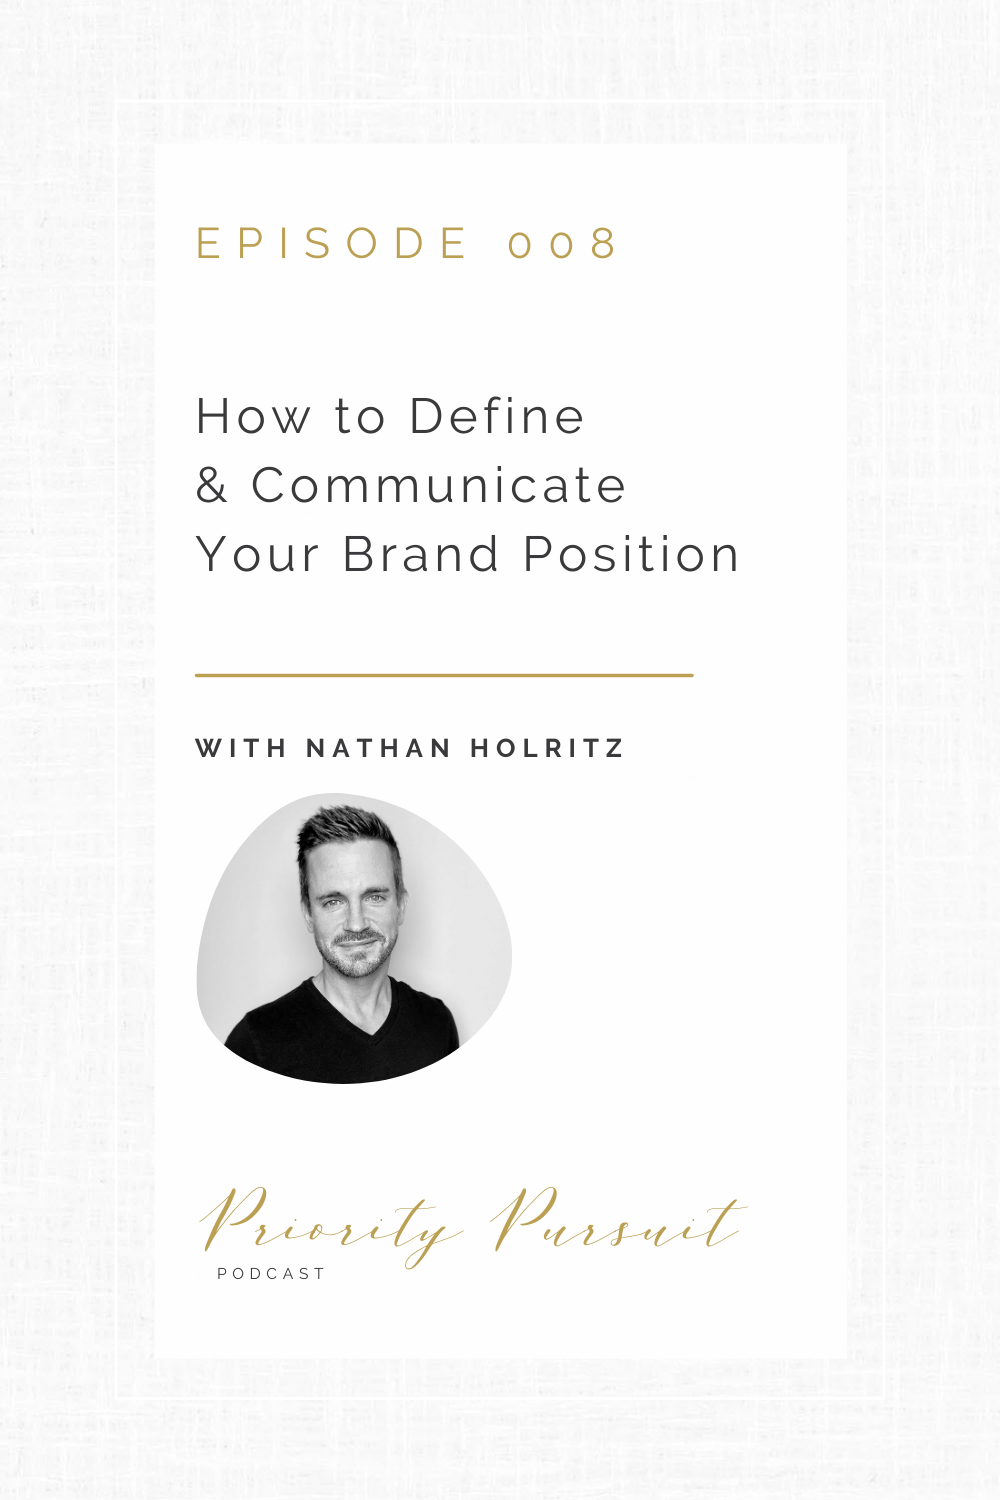 """Nathan Holritz explains how to define and communicate your unique brand position on the """"Priority Pursuit Podcast"""""""